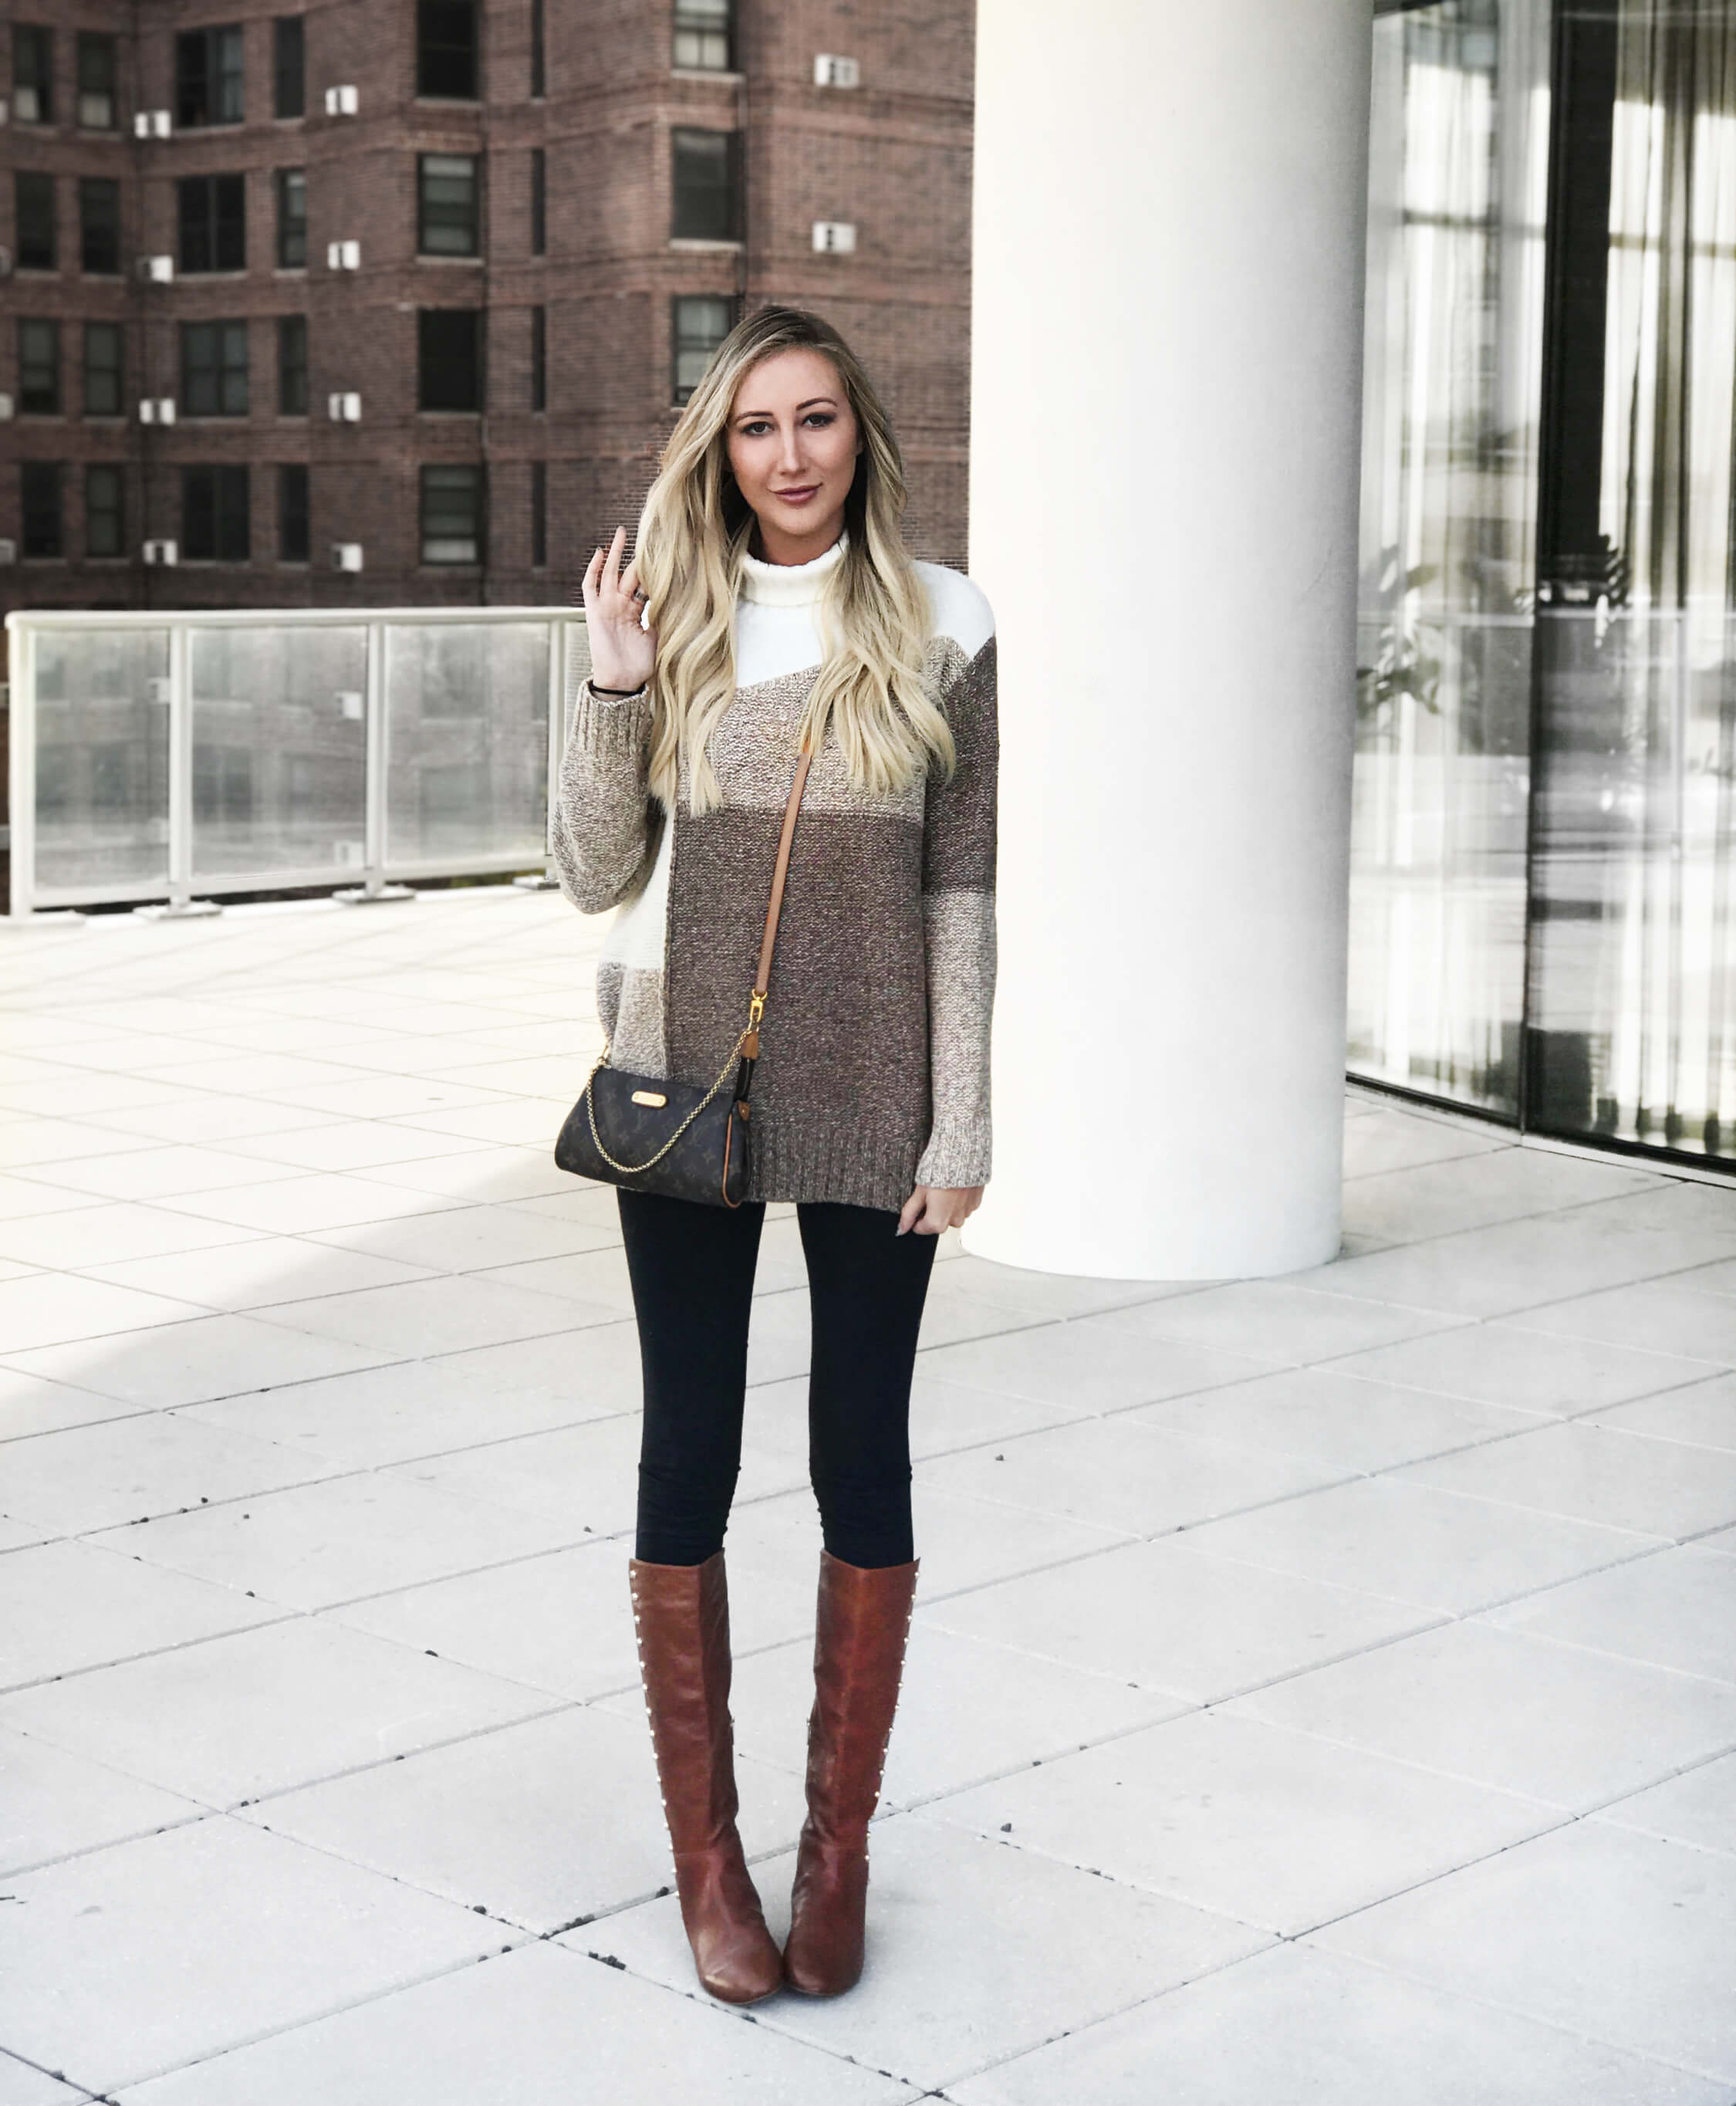 fall wardrobe essentials, colorblock sweater, patchwork sweater, neutral tone sweater, brown boots, knee high boots